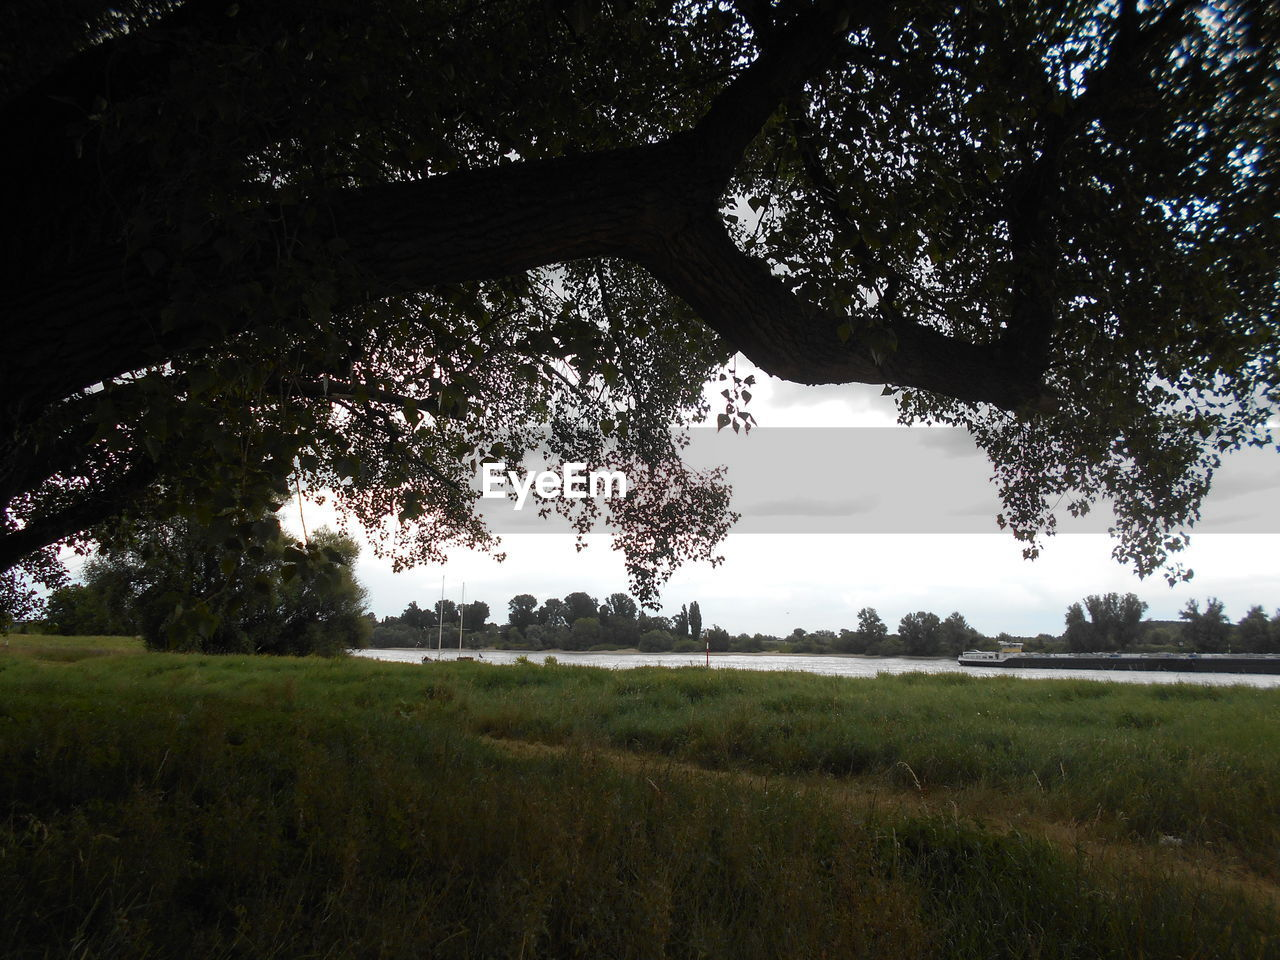 tree, plant, land, tranquility, landscape, sky, environment, tranquil scene, growth, field, grass, beauty in nature, nature, scenics - nature, no people, non-urban scene, day, outdoors, green color, rural scene